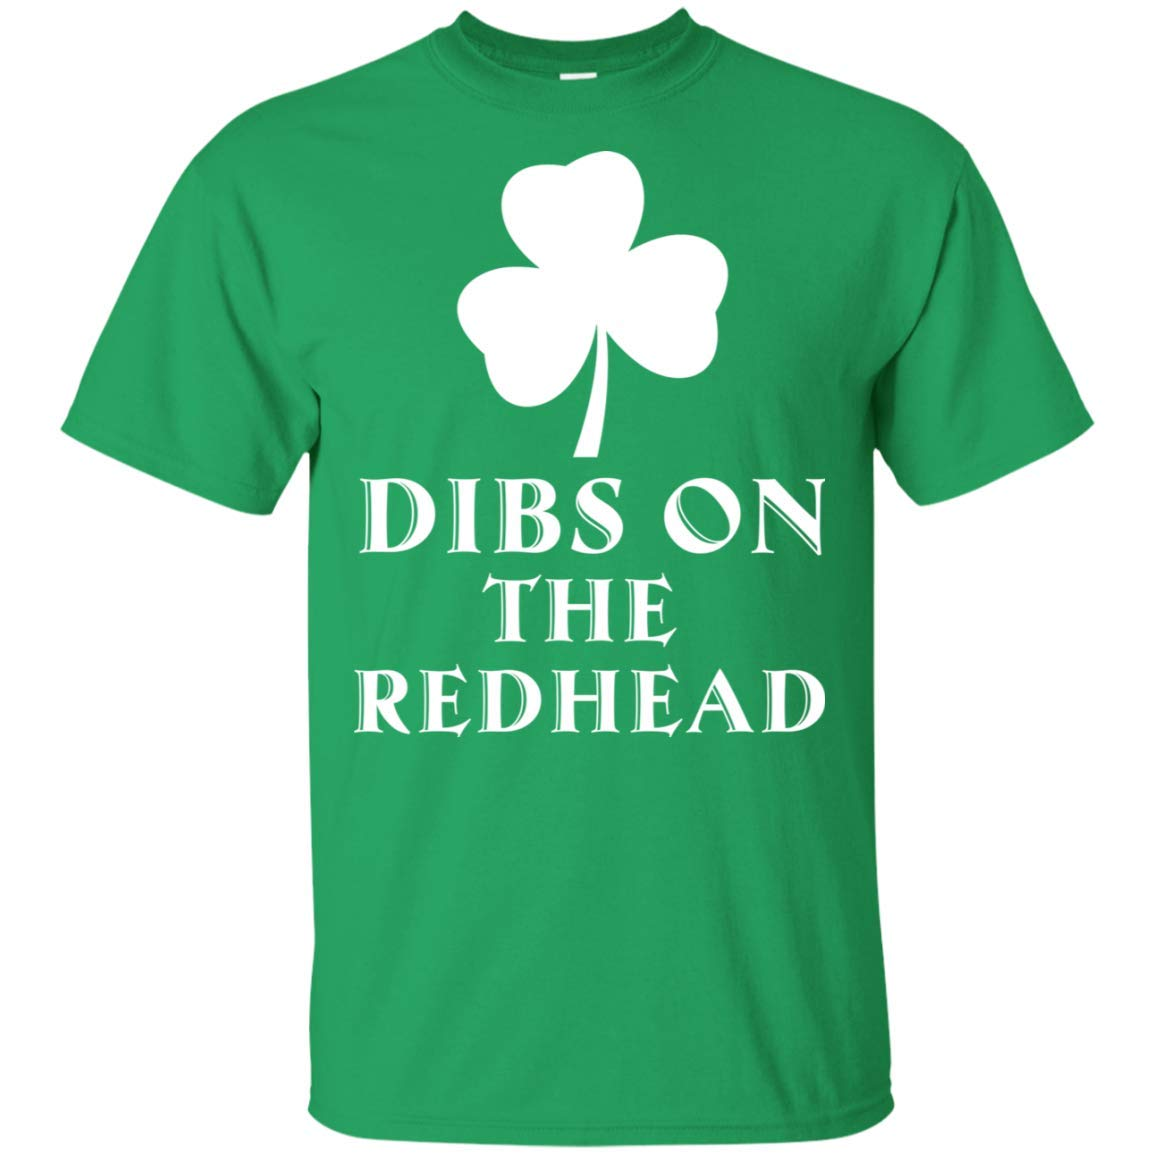 Dibs On The Redhead Tshirt For